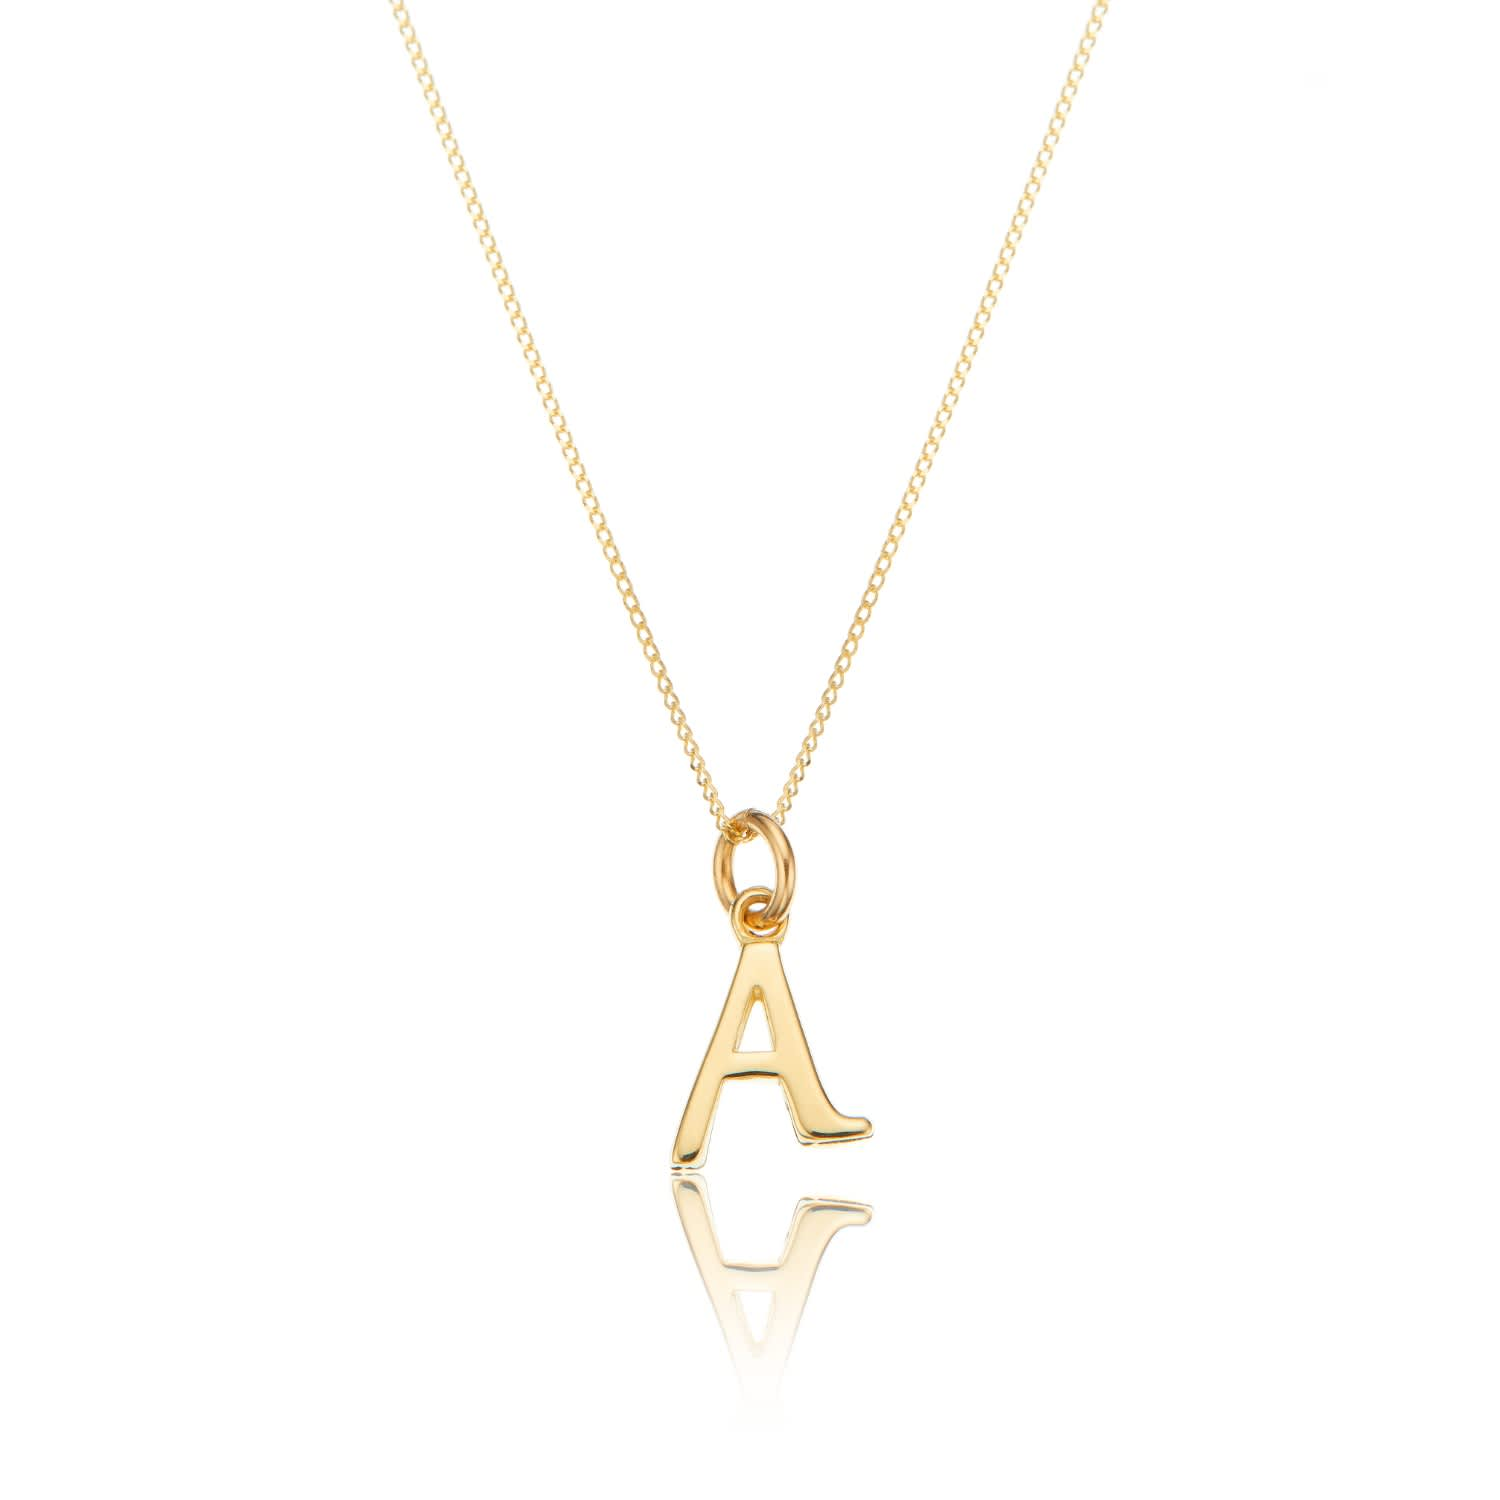 5ce47c6e5287b Small Solid Gold Initial Letter Necklace by Lily & Roo